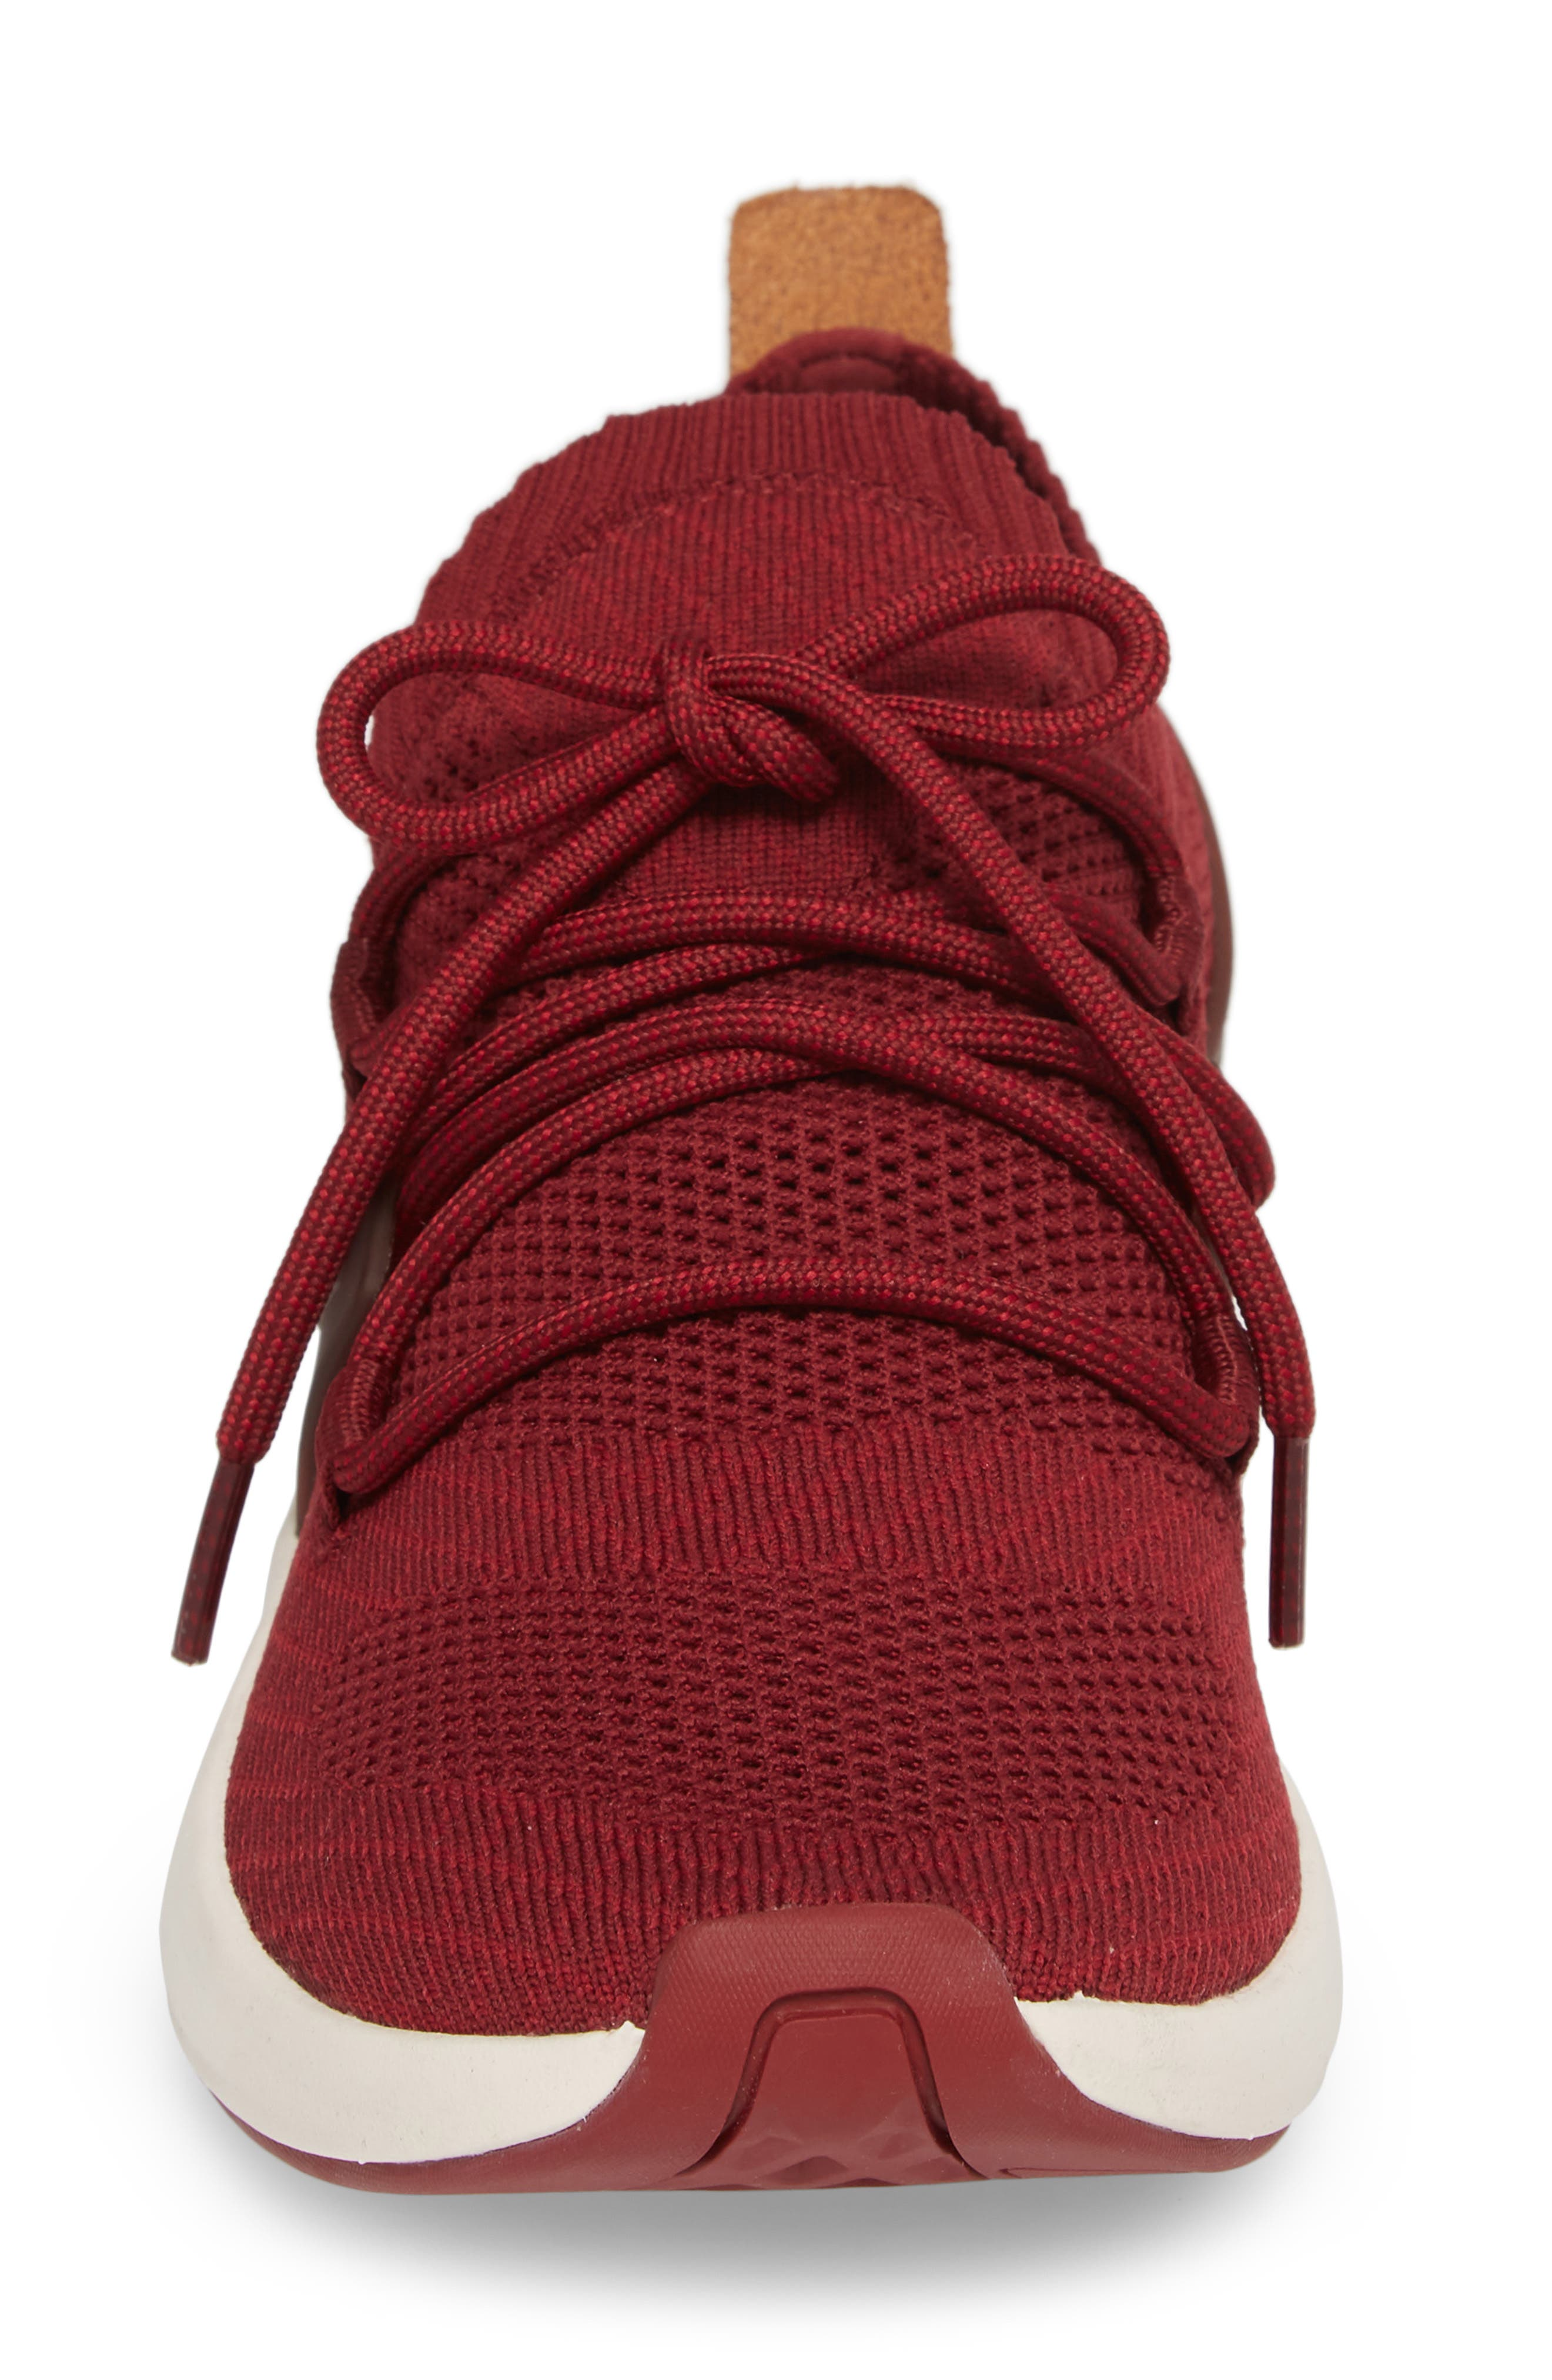 FlyRoam Sneaker,                             Alternate thumbnail 4, color,                             POMEGRANATE LEATHER